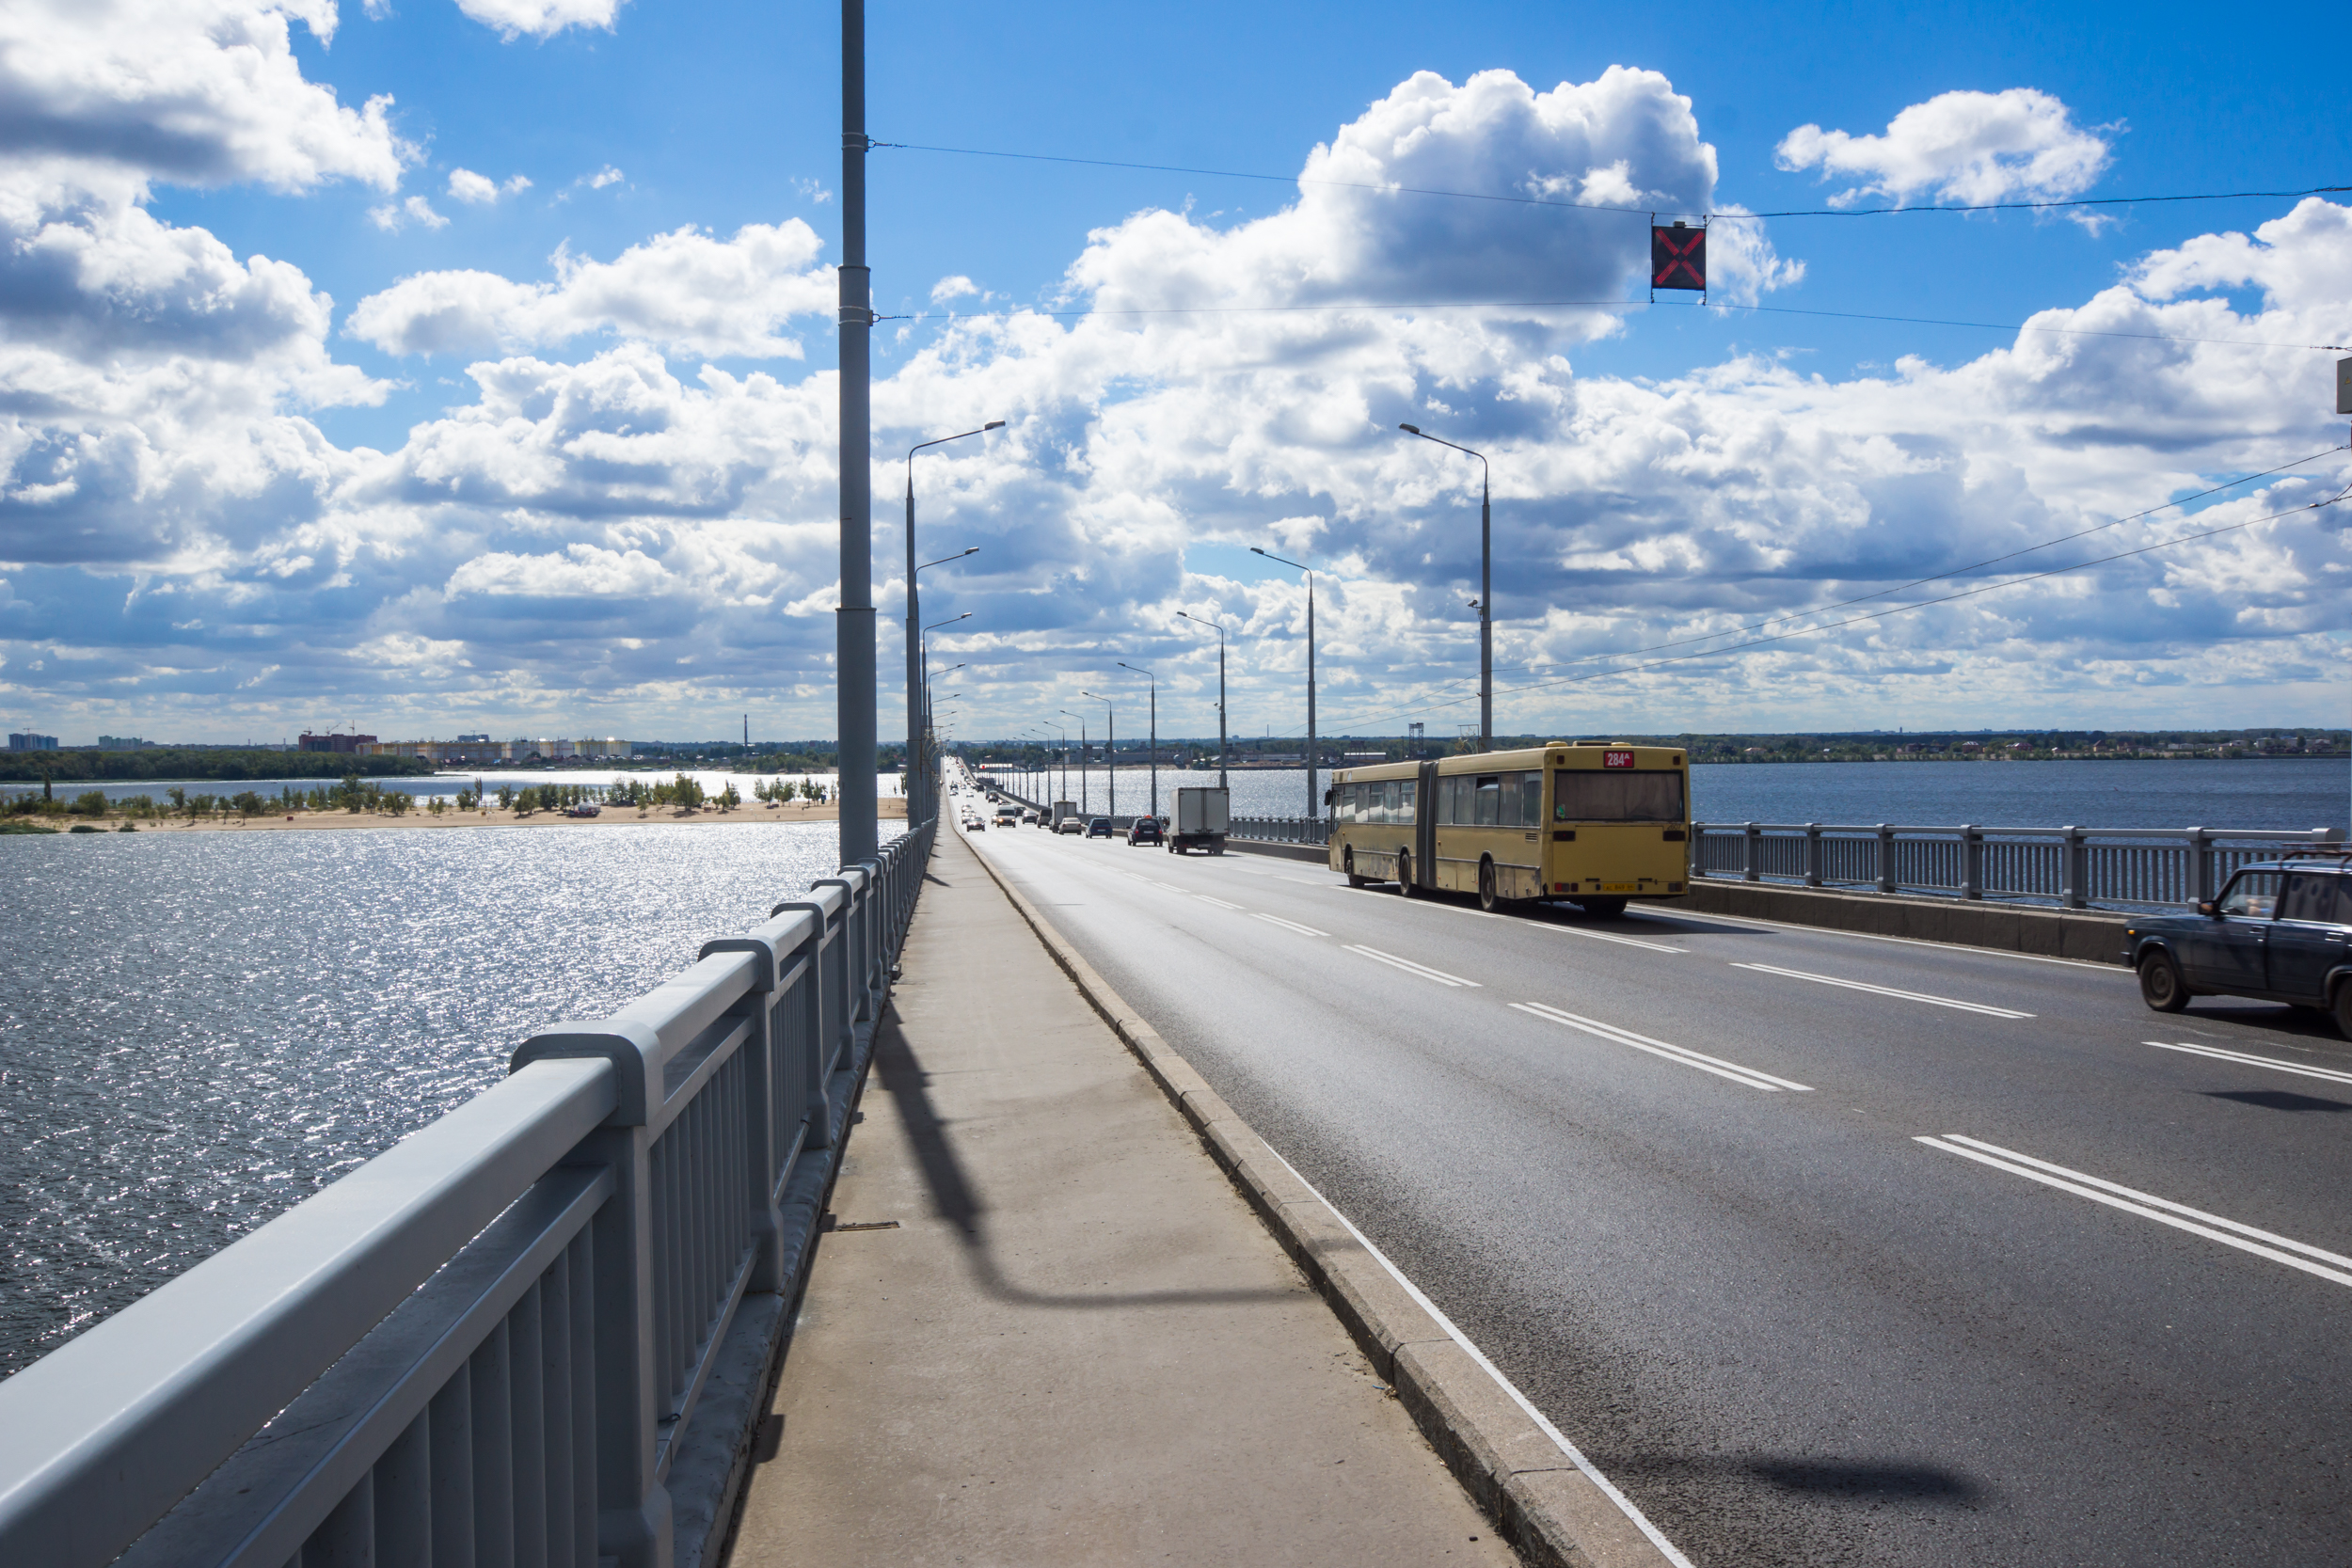 Saratov bridge 2016